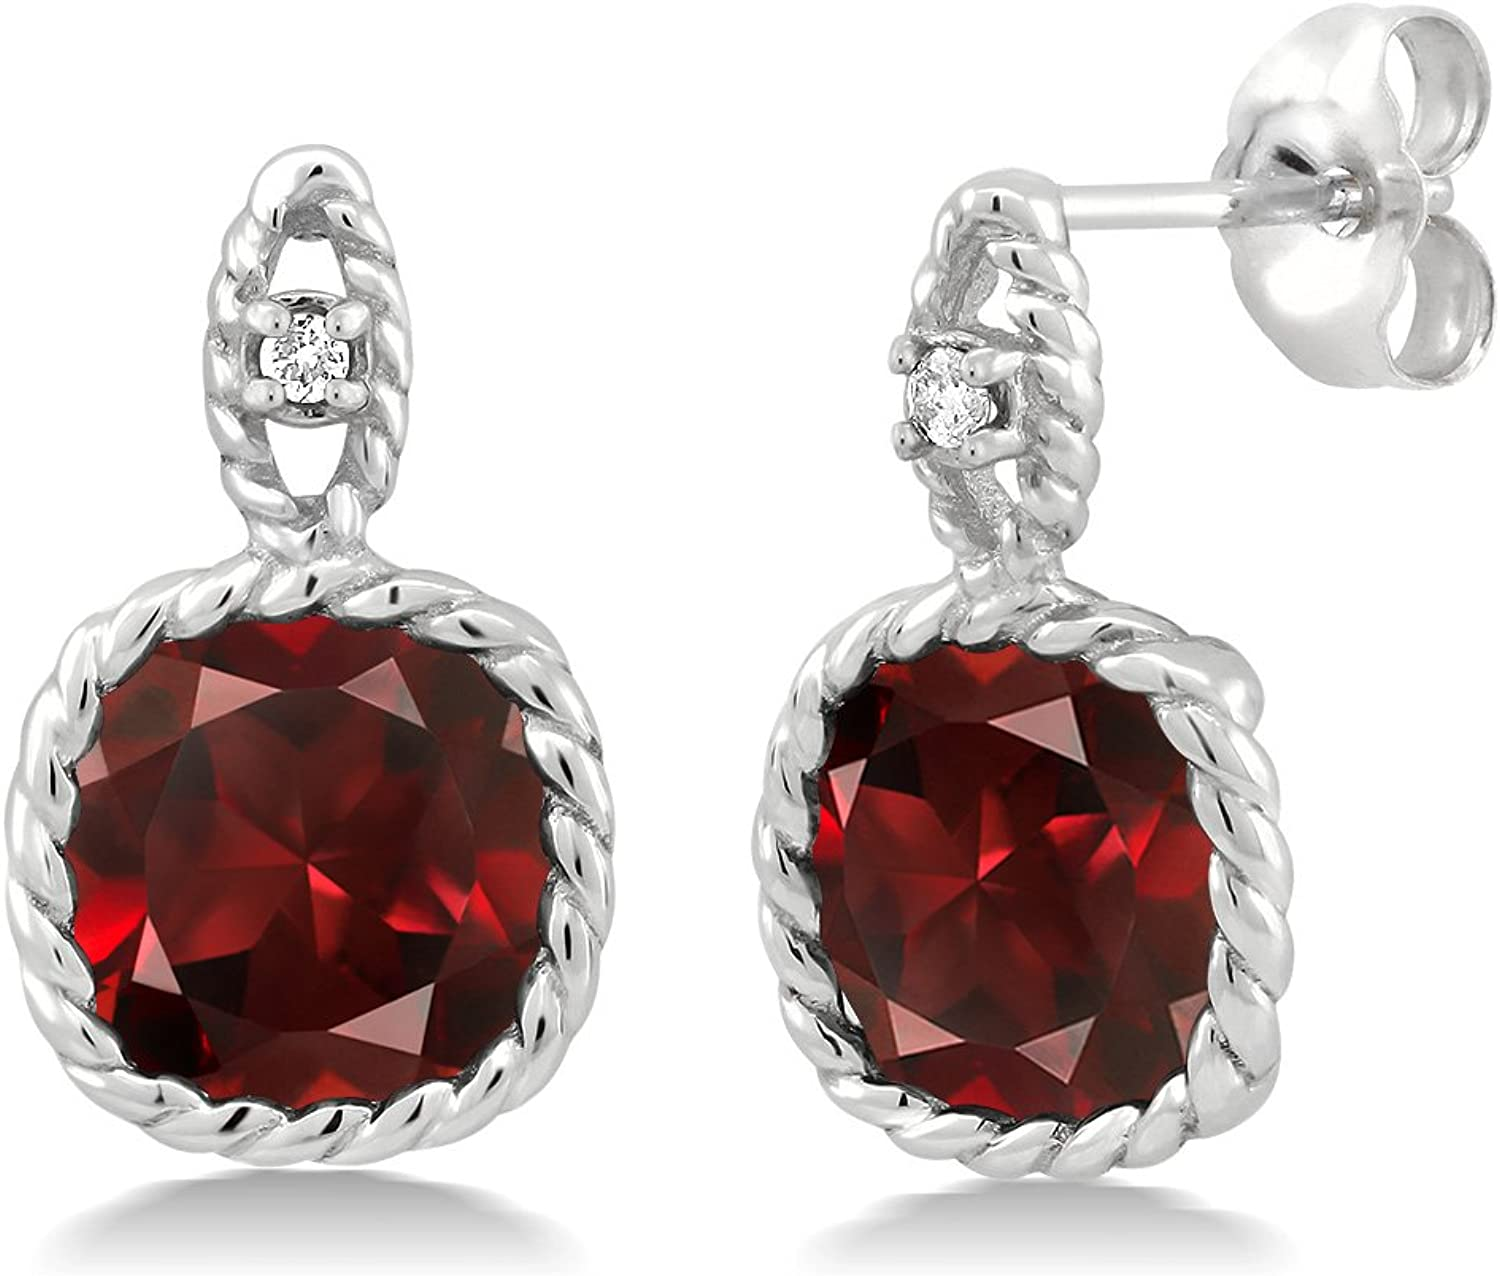 10K White gold 5.48 Ct 8mm Cushion Red Garnet and Diamond Cable Earrings